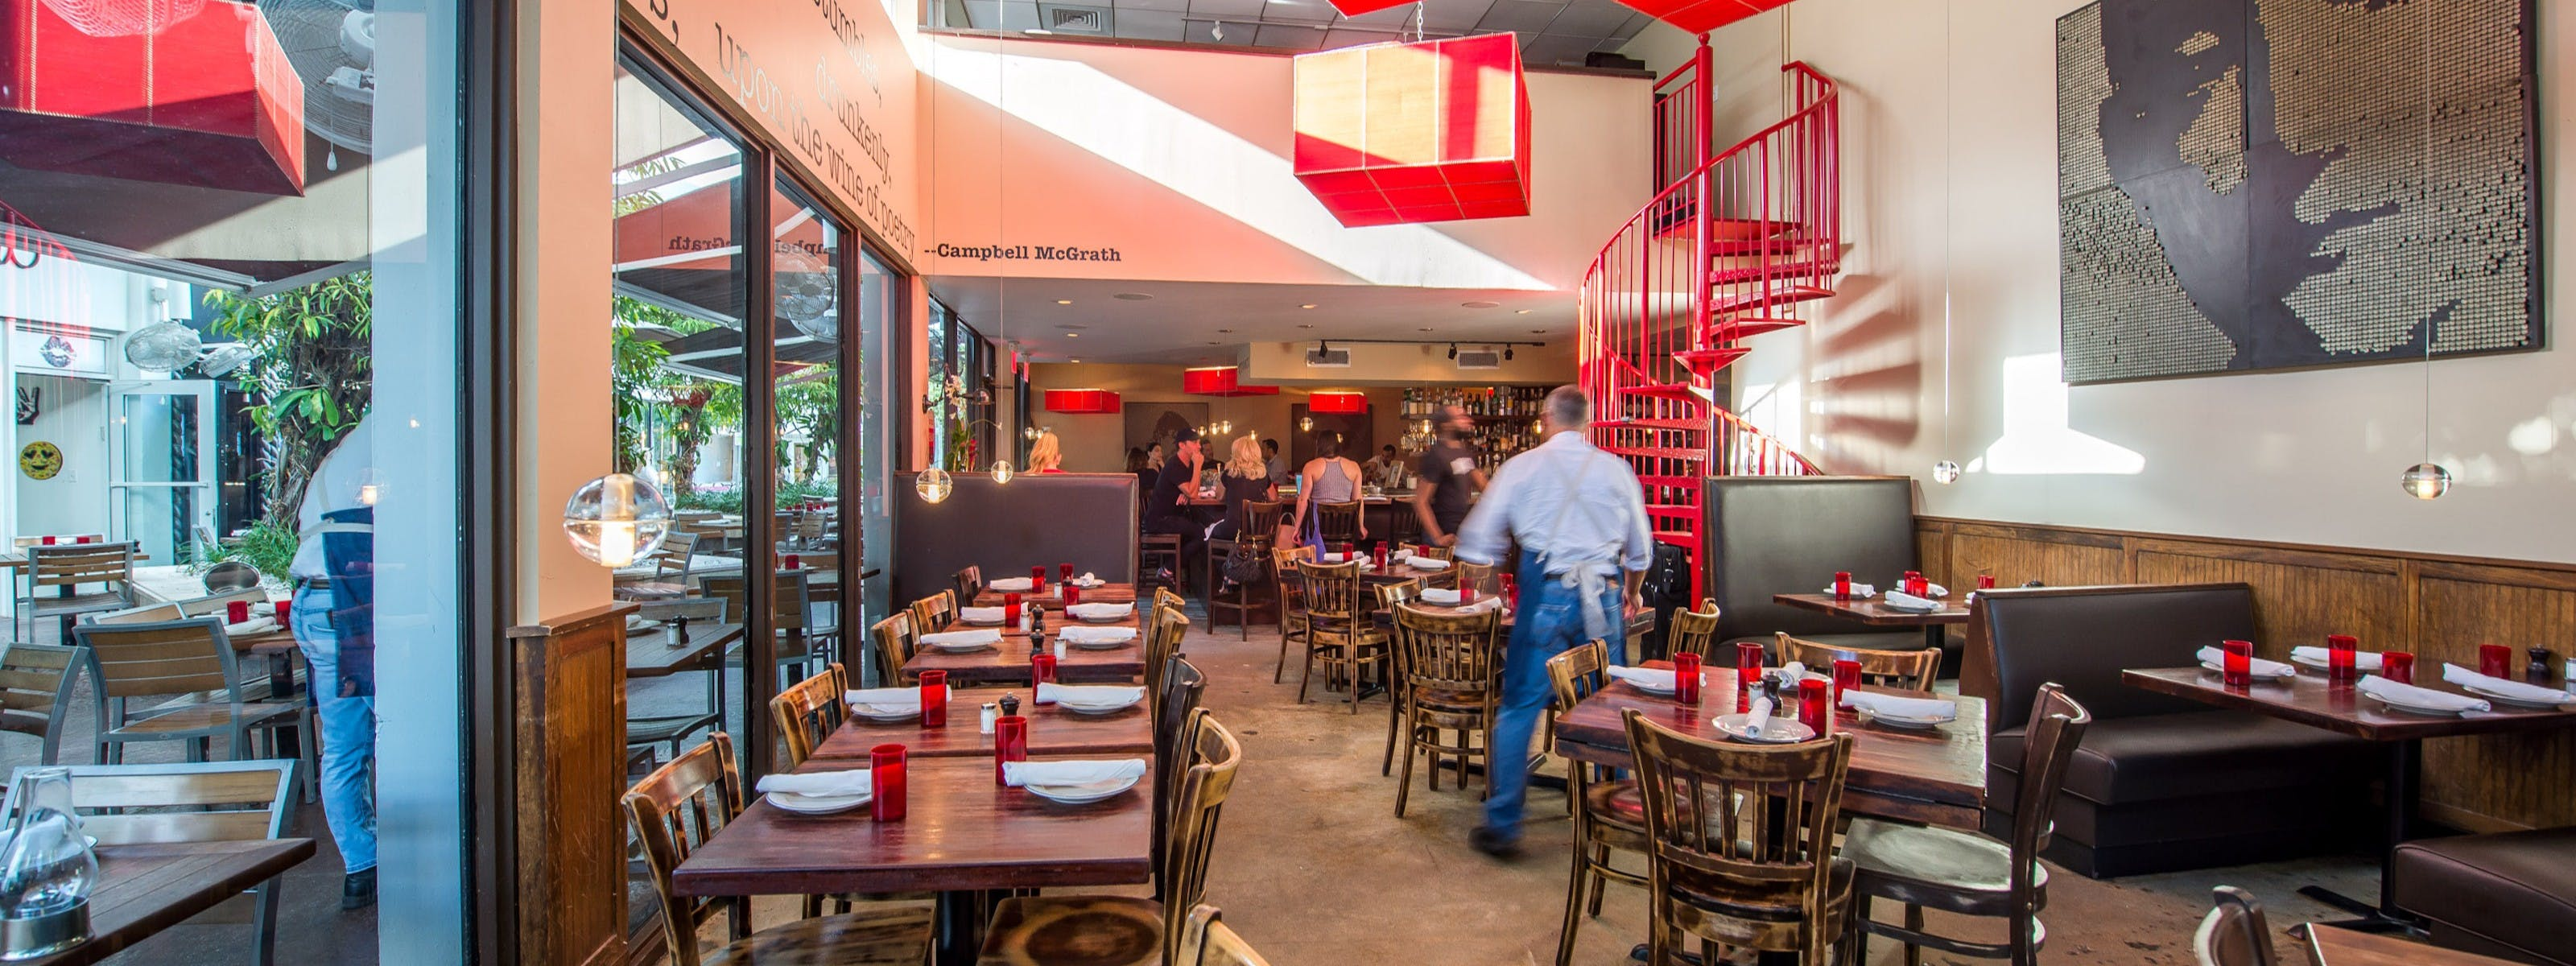 The Miami Brunch Guide - The Infatuation